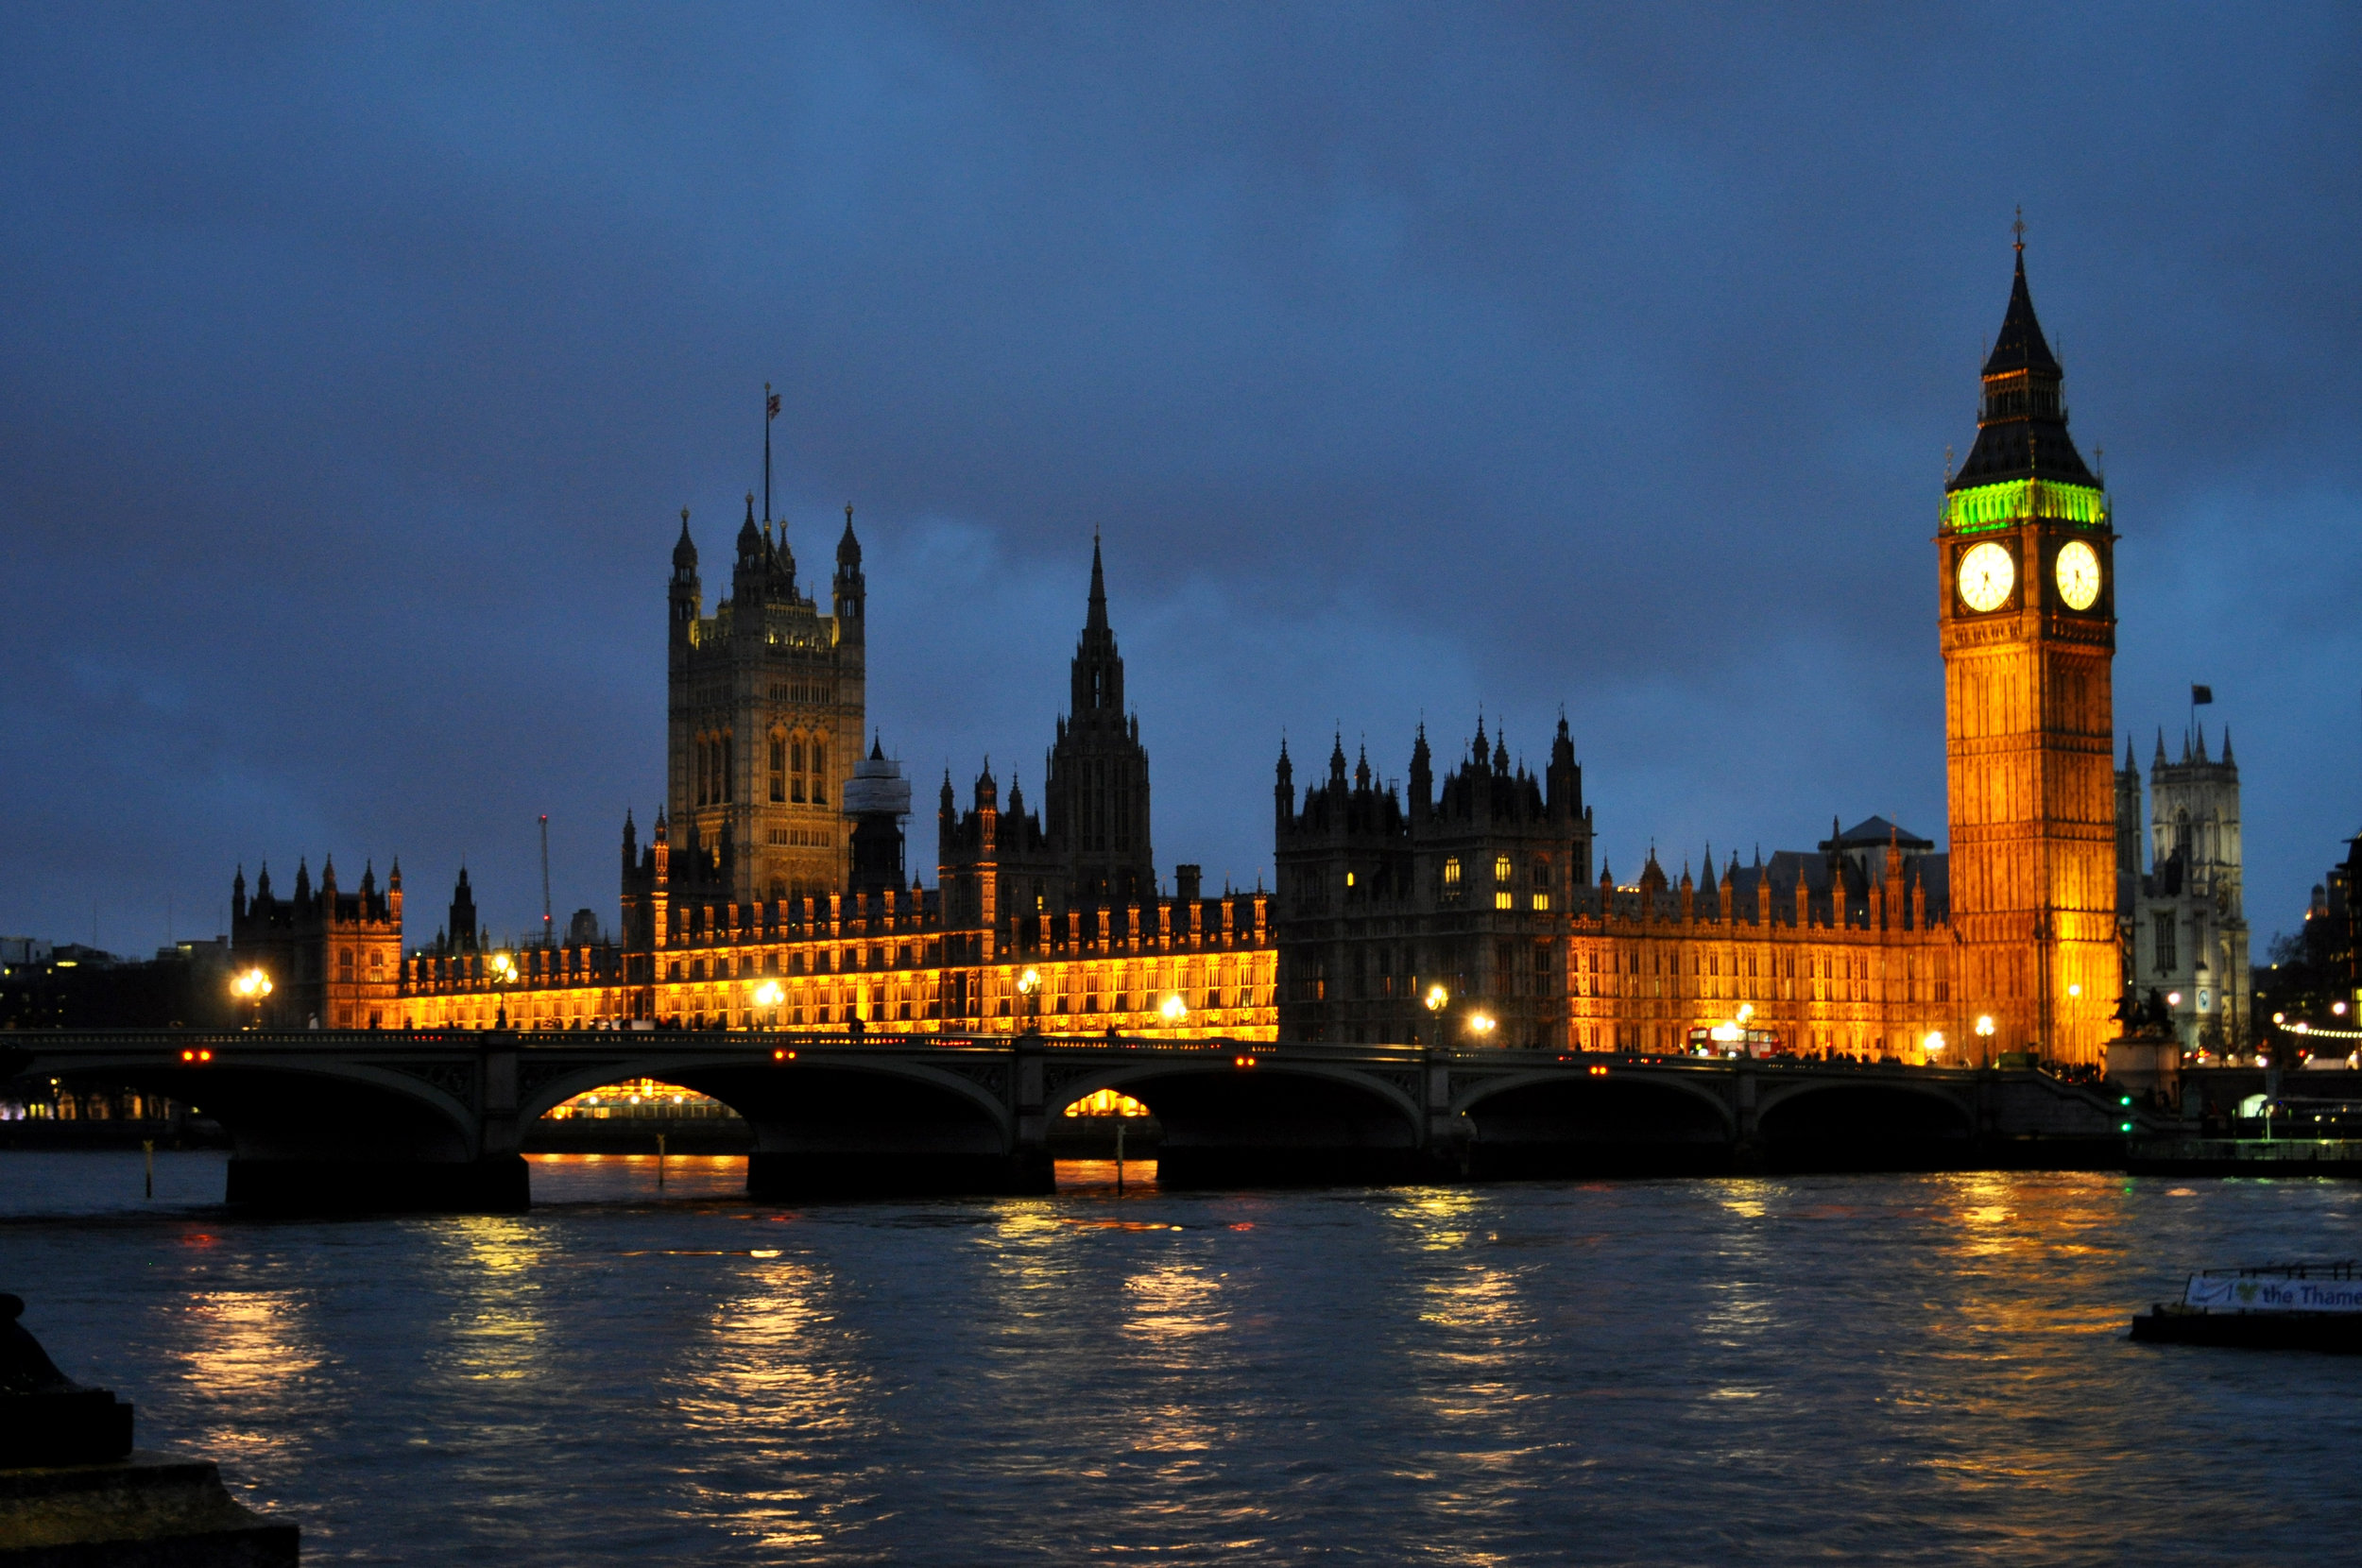 Big Ben Clock Tower and the House of Parliament in London, England.